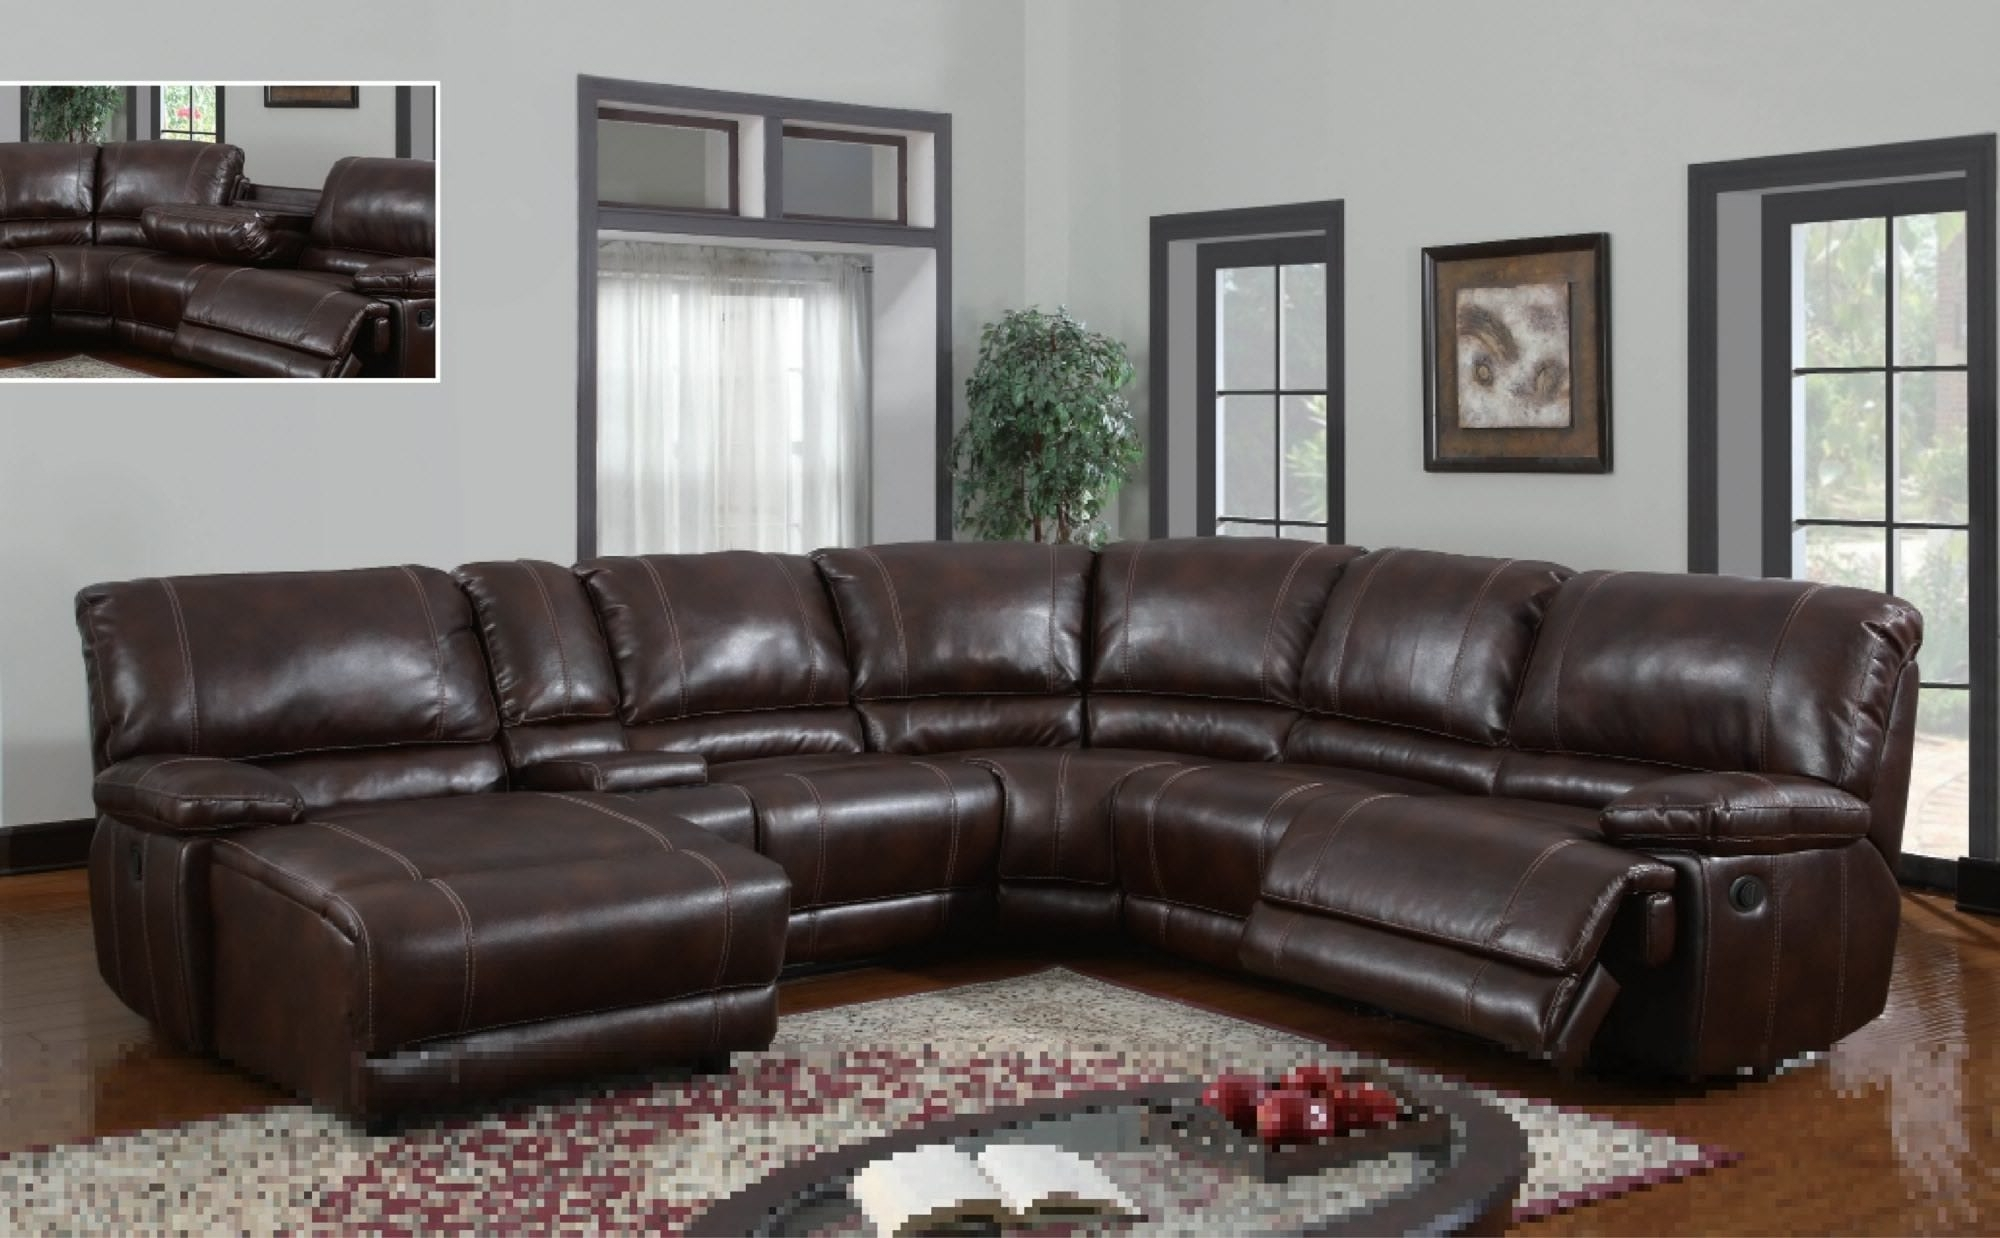 Sectional Sofas With Electric Recliners Pertaining To Favorite Sectional Sofa Design: Power Reclining Sectional Sofa Reviews (View 15 of 20)